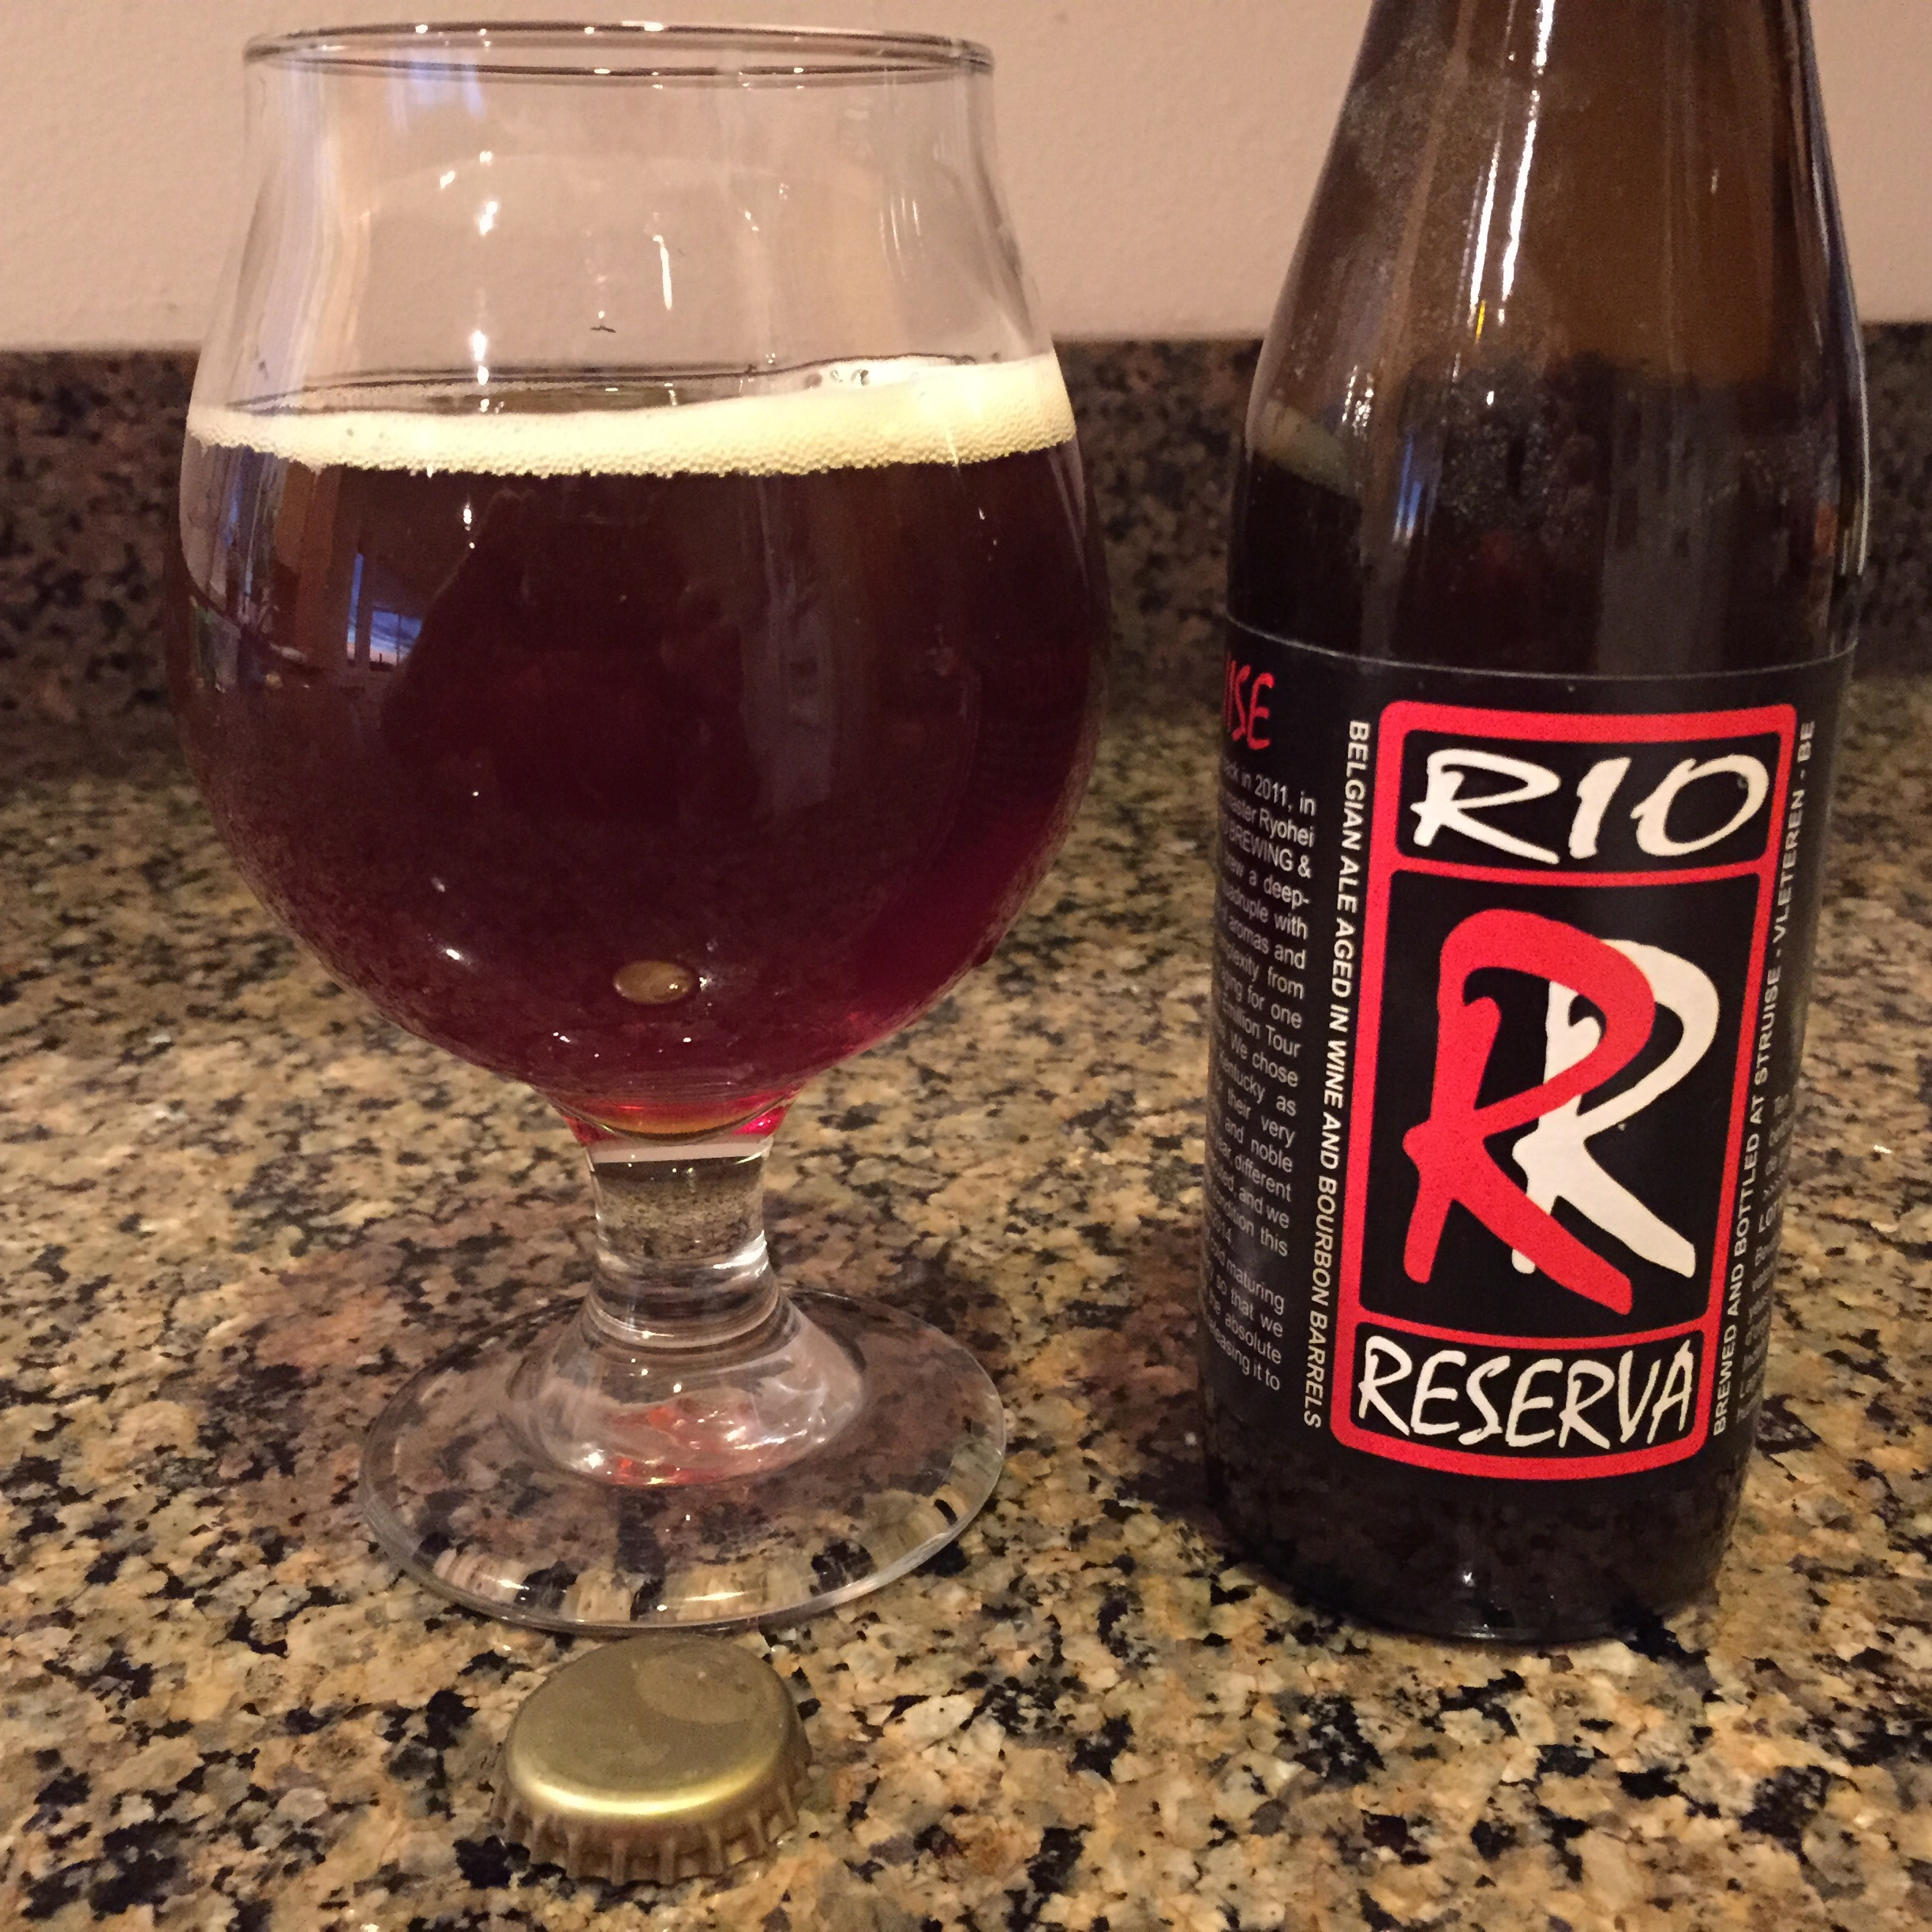 Rio Reserva – 2011 by De Struise Brouwers